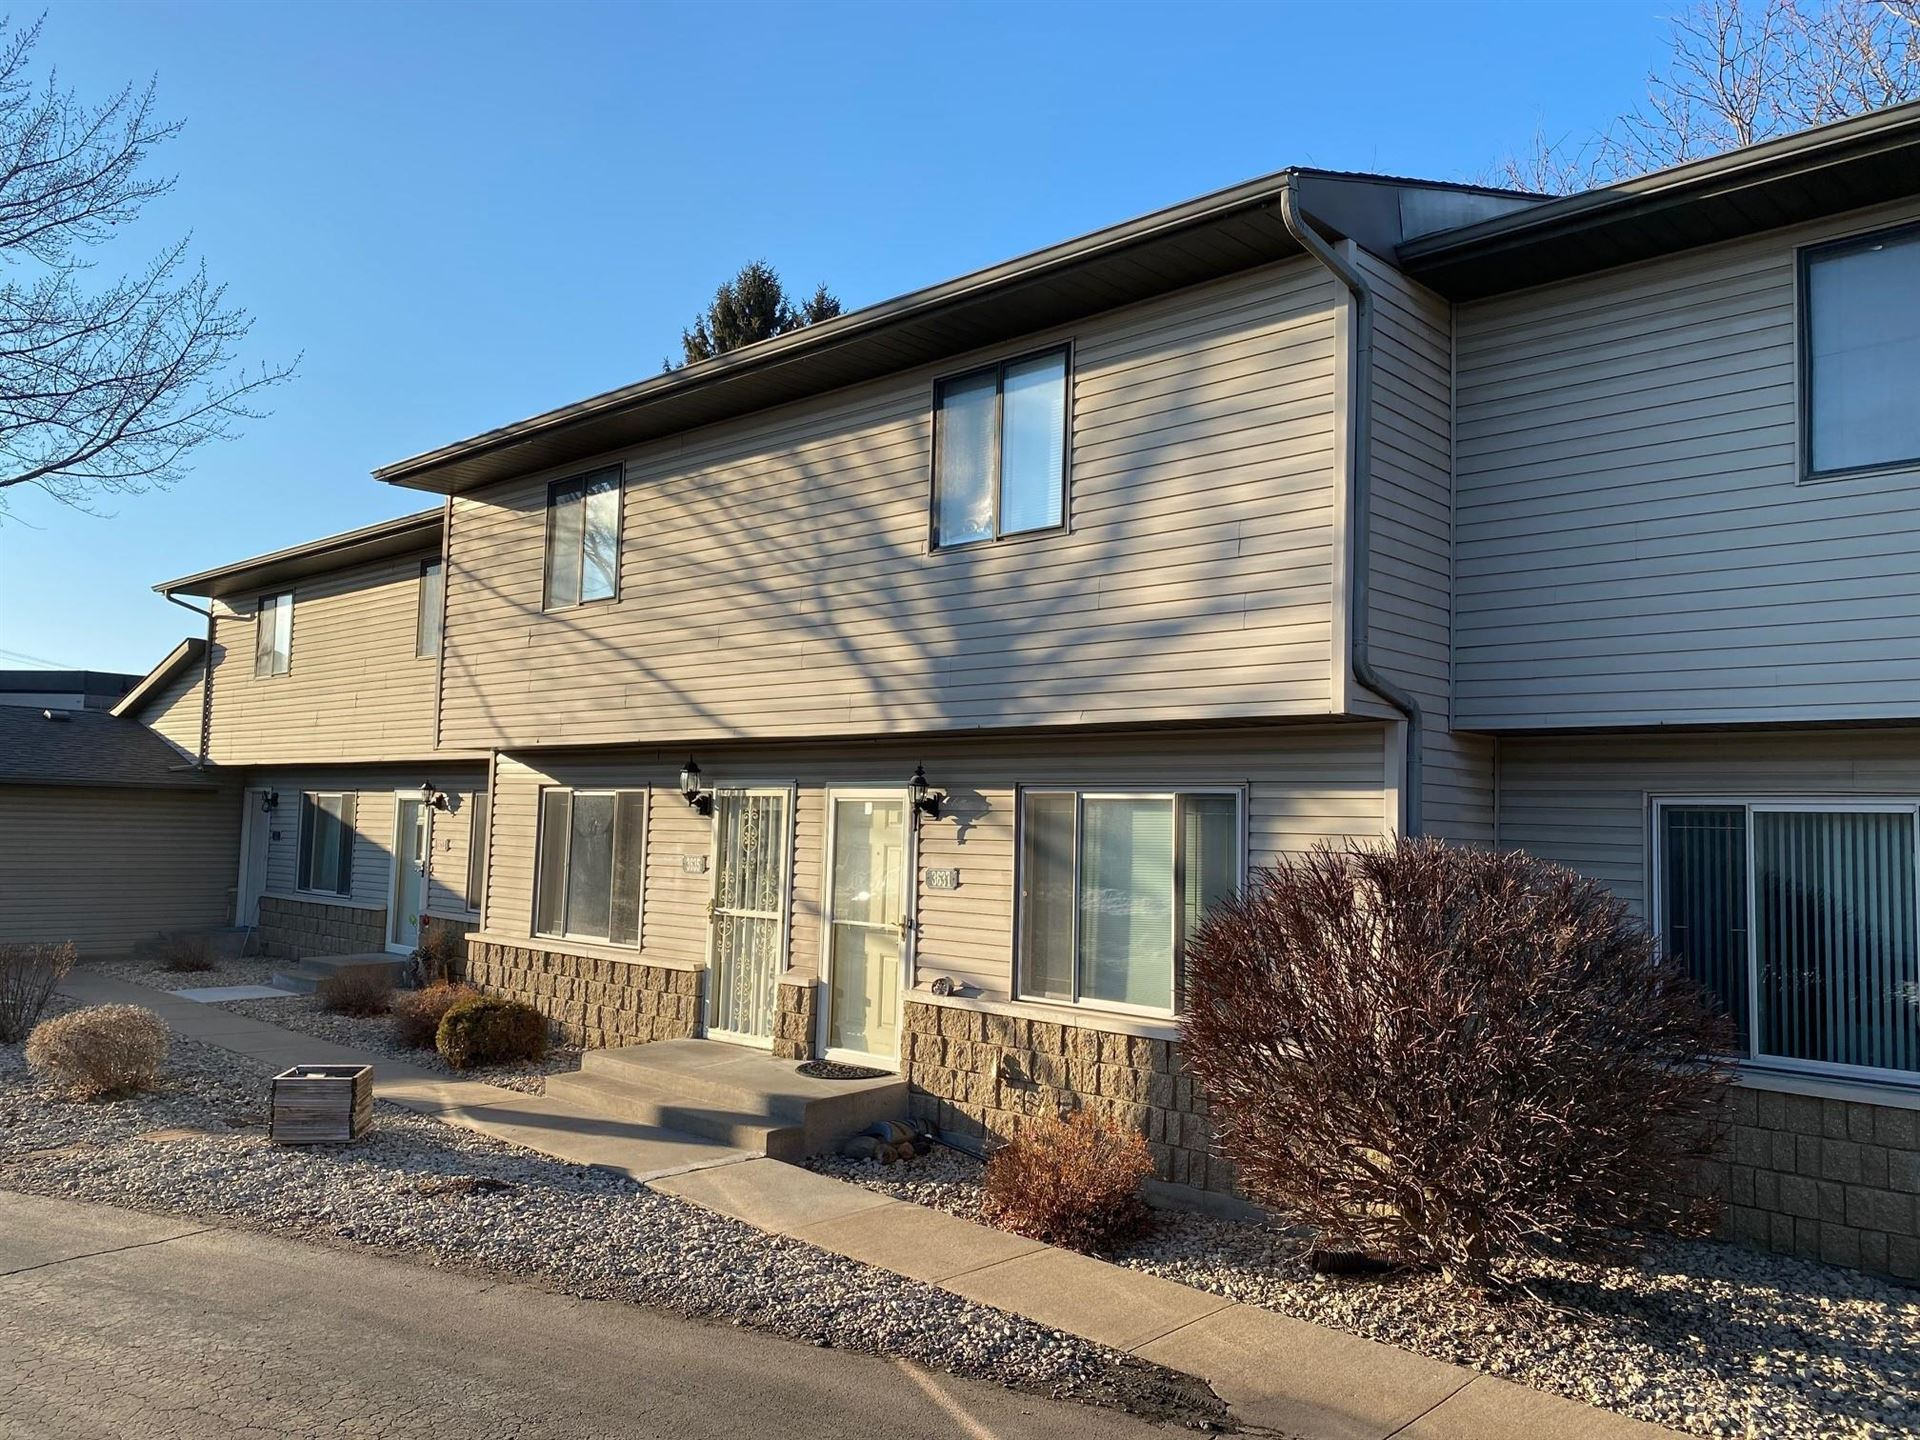 3635 Mormon Coulee Rd, La Crosse, WI 54601 - MLS#: 1729265